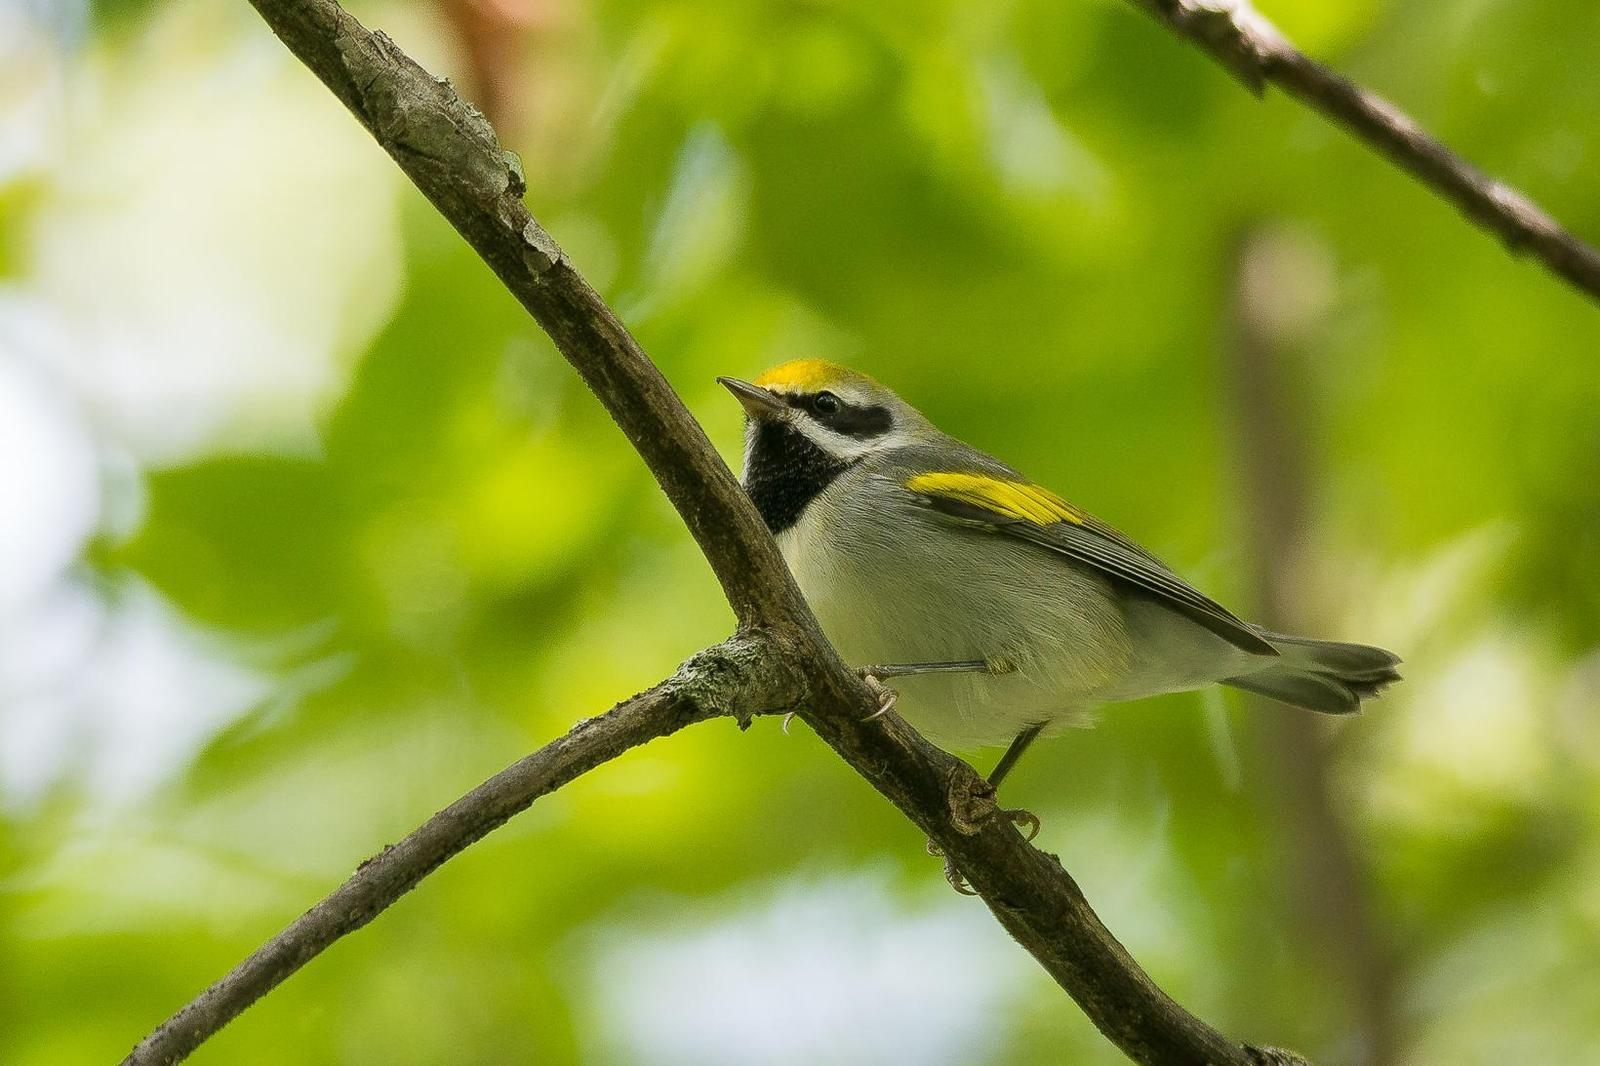 Golden-winged Warbler Photo by Gerald Hoekstra